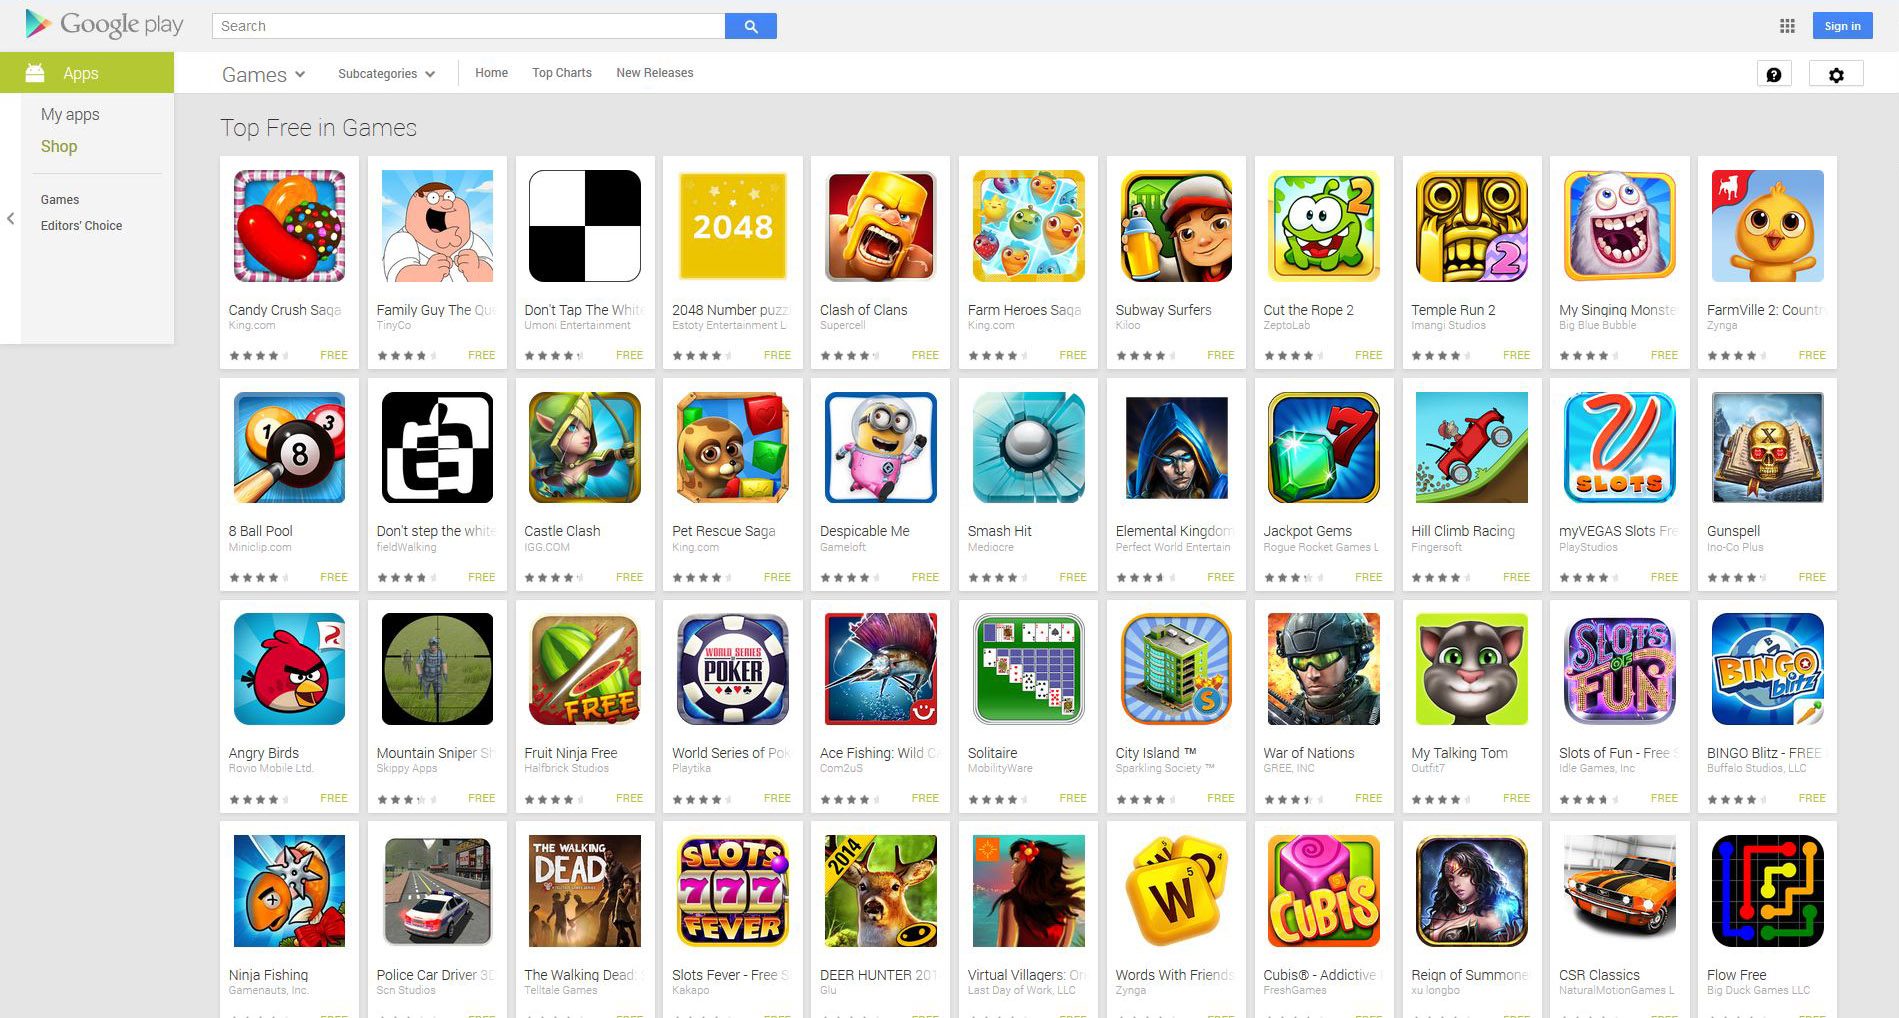 2014-04-22-01_10_52-Top-Free-in-Games-Android-Apps-on-Google-Play.jpg